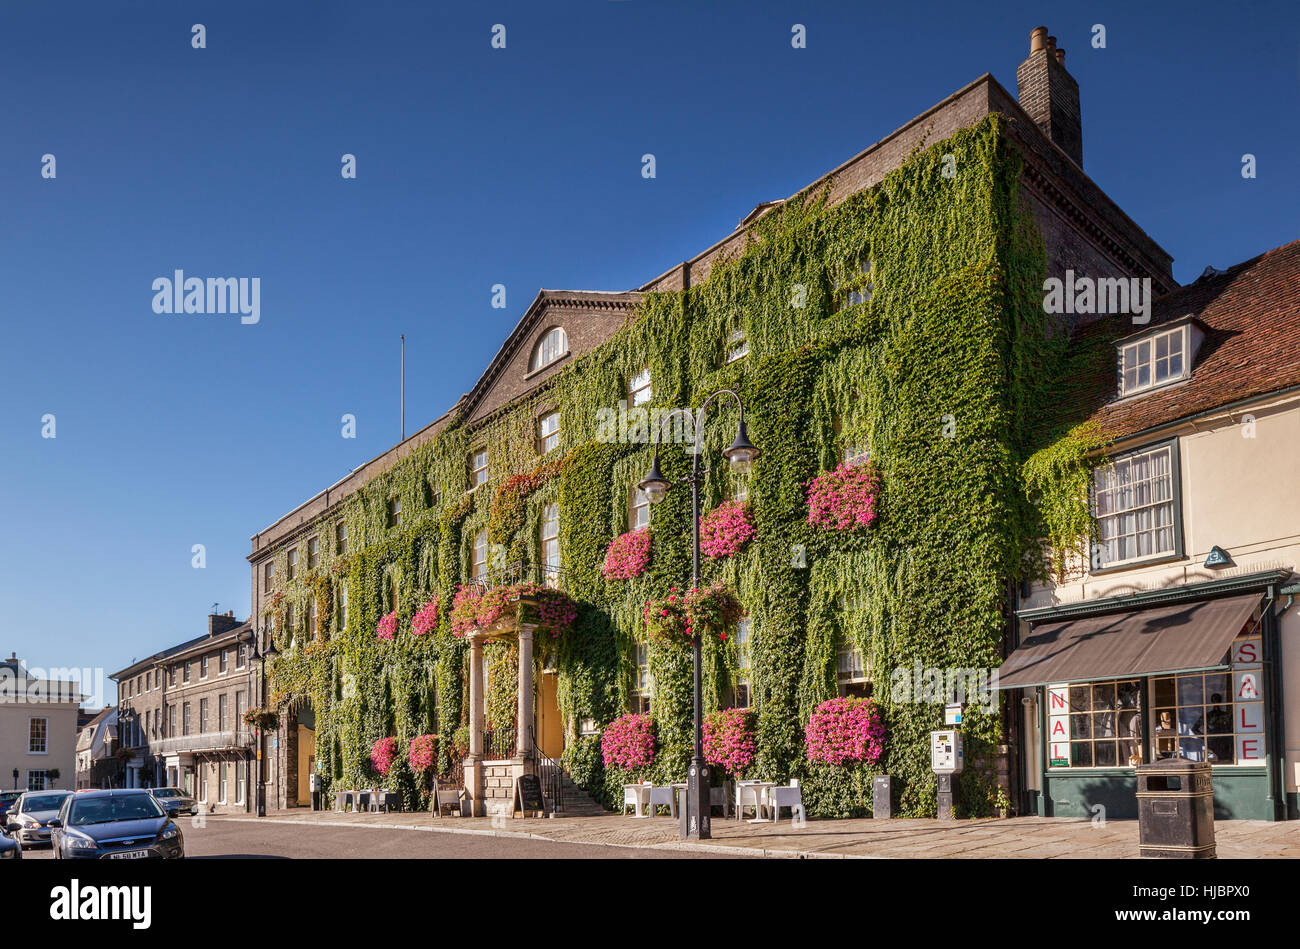 Angek Hotel, Market Square, Bury St Edmunds, Cambridgeshire, England, covered in Virginia Creeper. - Stock Image